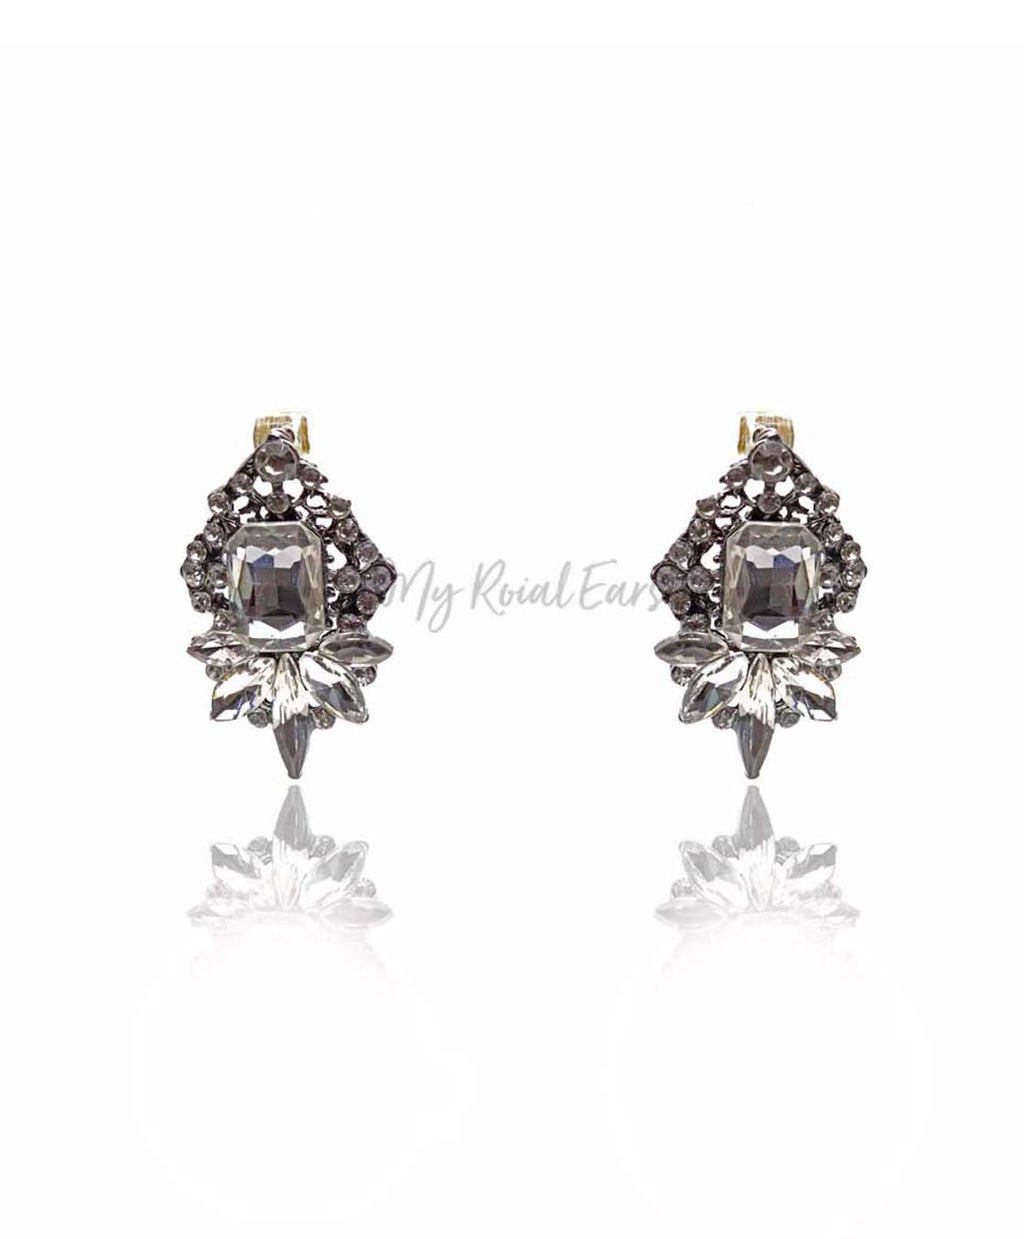 Q.QUINN-rhombus white glass crystal bridal stud earrings - My Roial Ears LTD